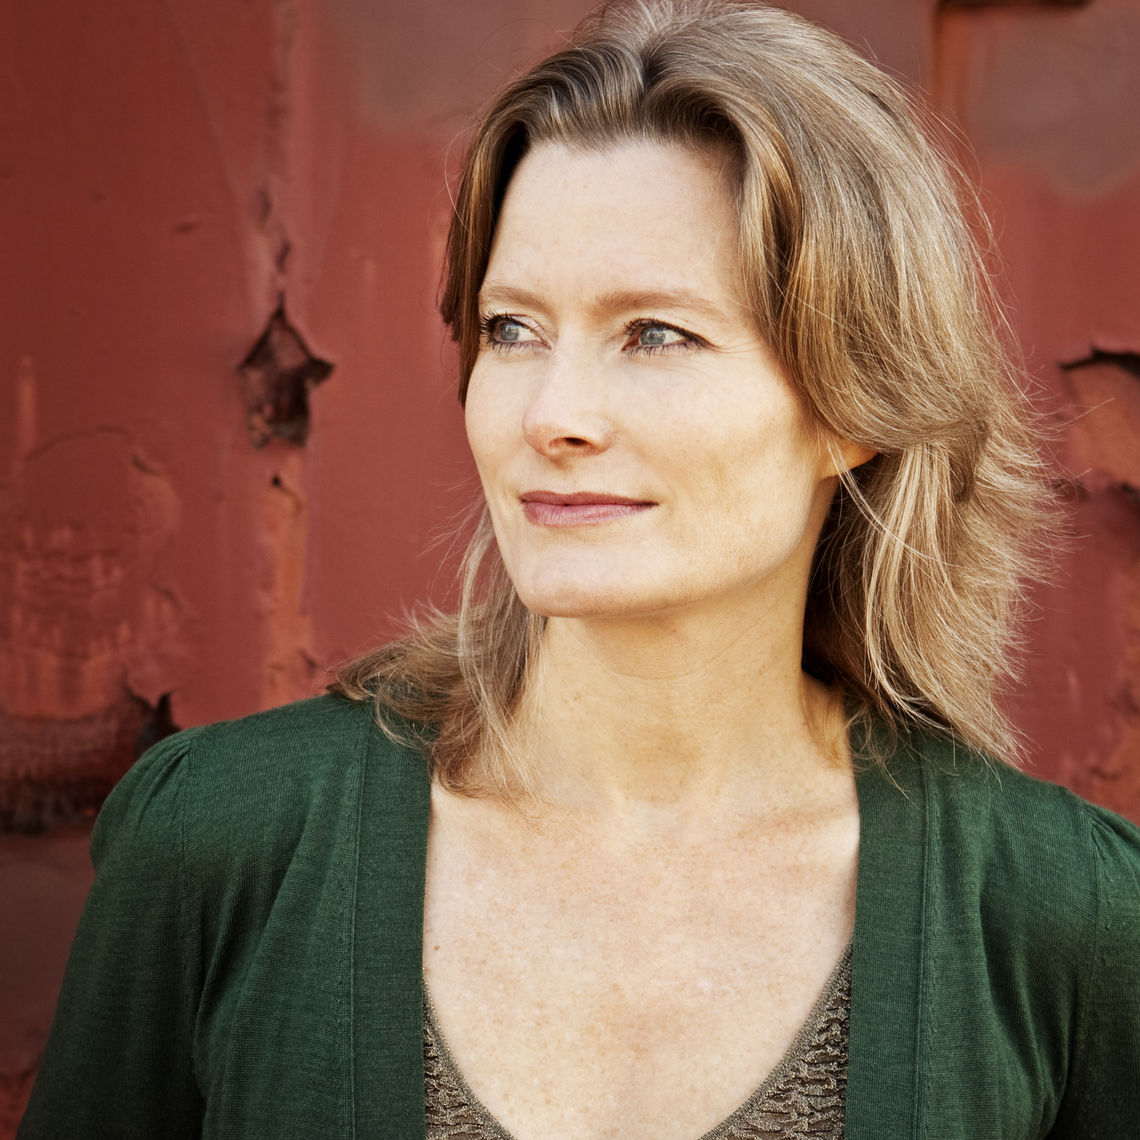 """Jennifer Egan, who won the 2011 Pulitzer Prize for """"A Visit from the Goon Squad,"""" is this year's Hausman Lecturer at Franklin & Marshall College. On Oct. 28, she will read from her works at F&M's Ann and Richard Barshinger Center for Musical Arts."""